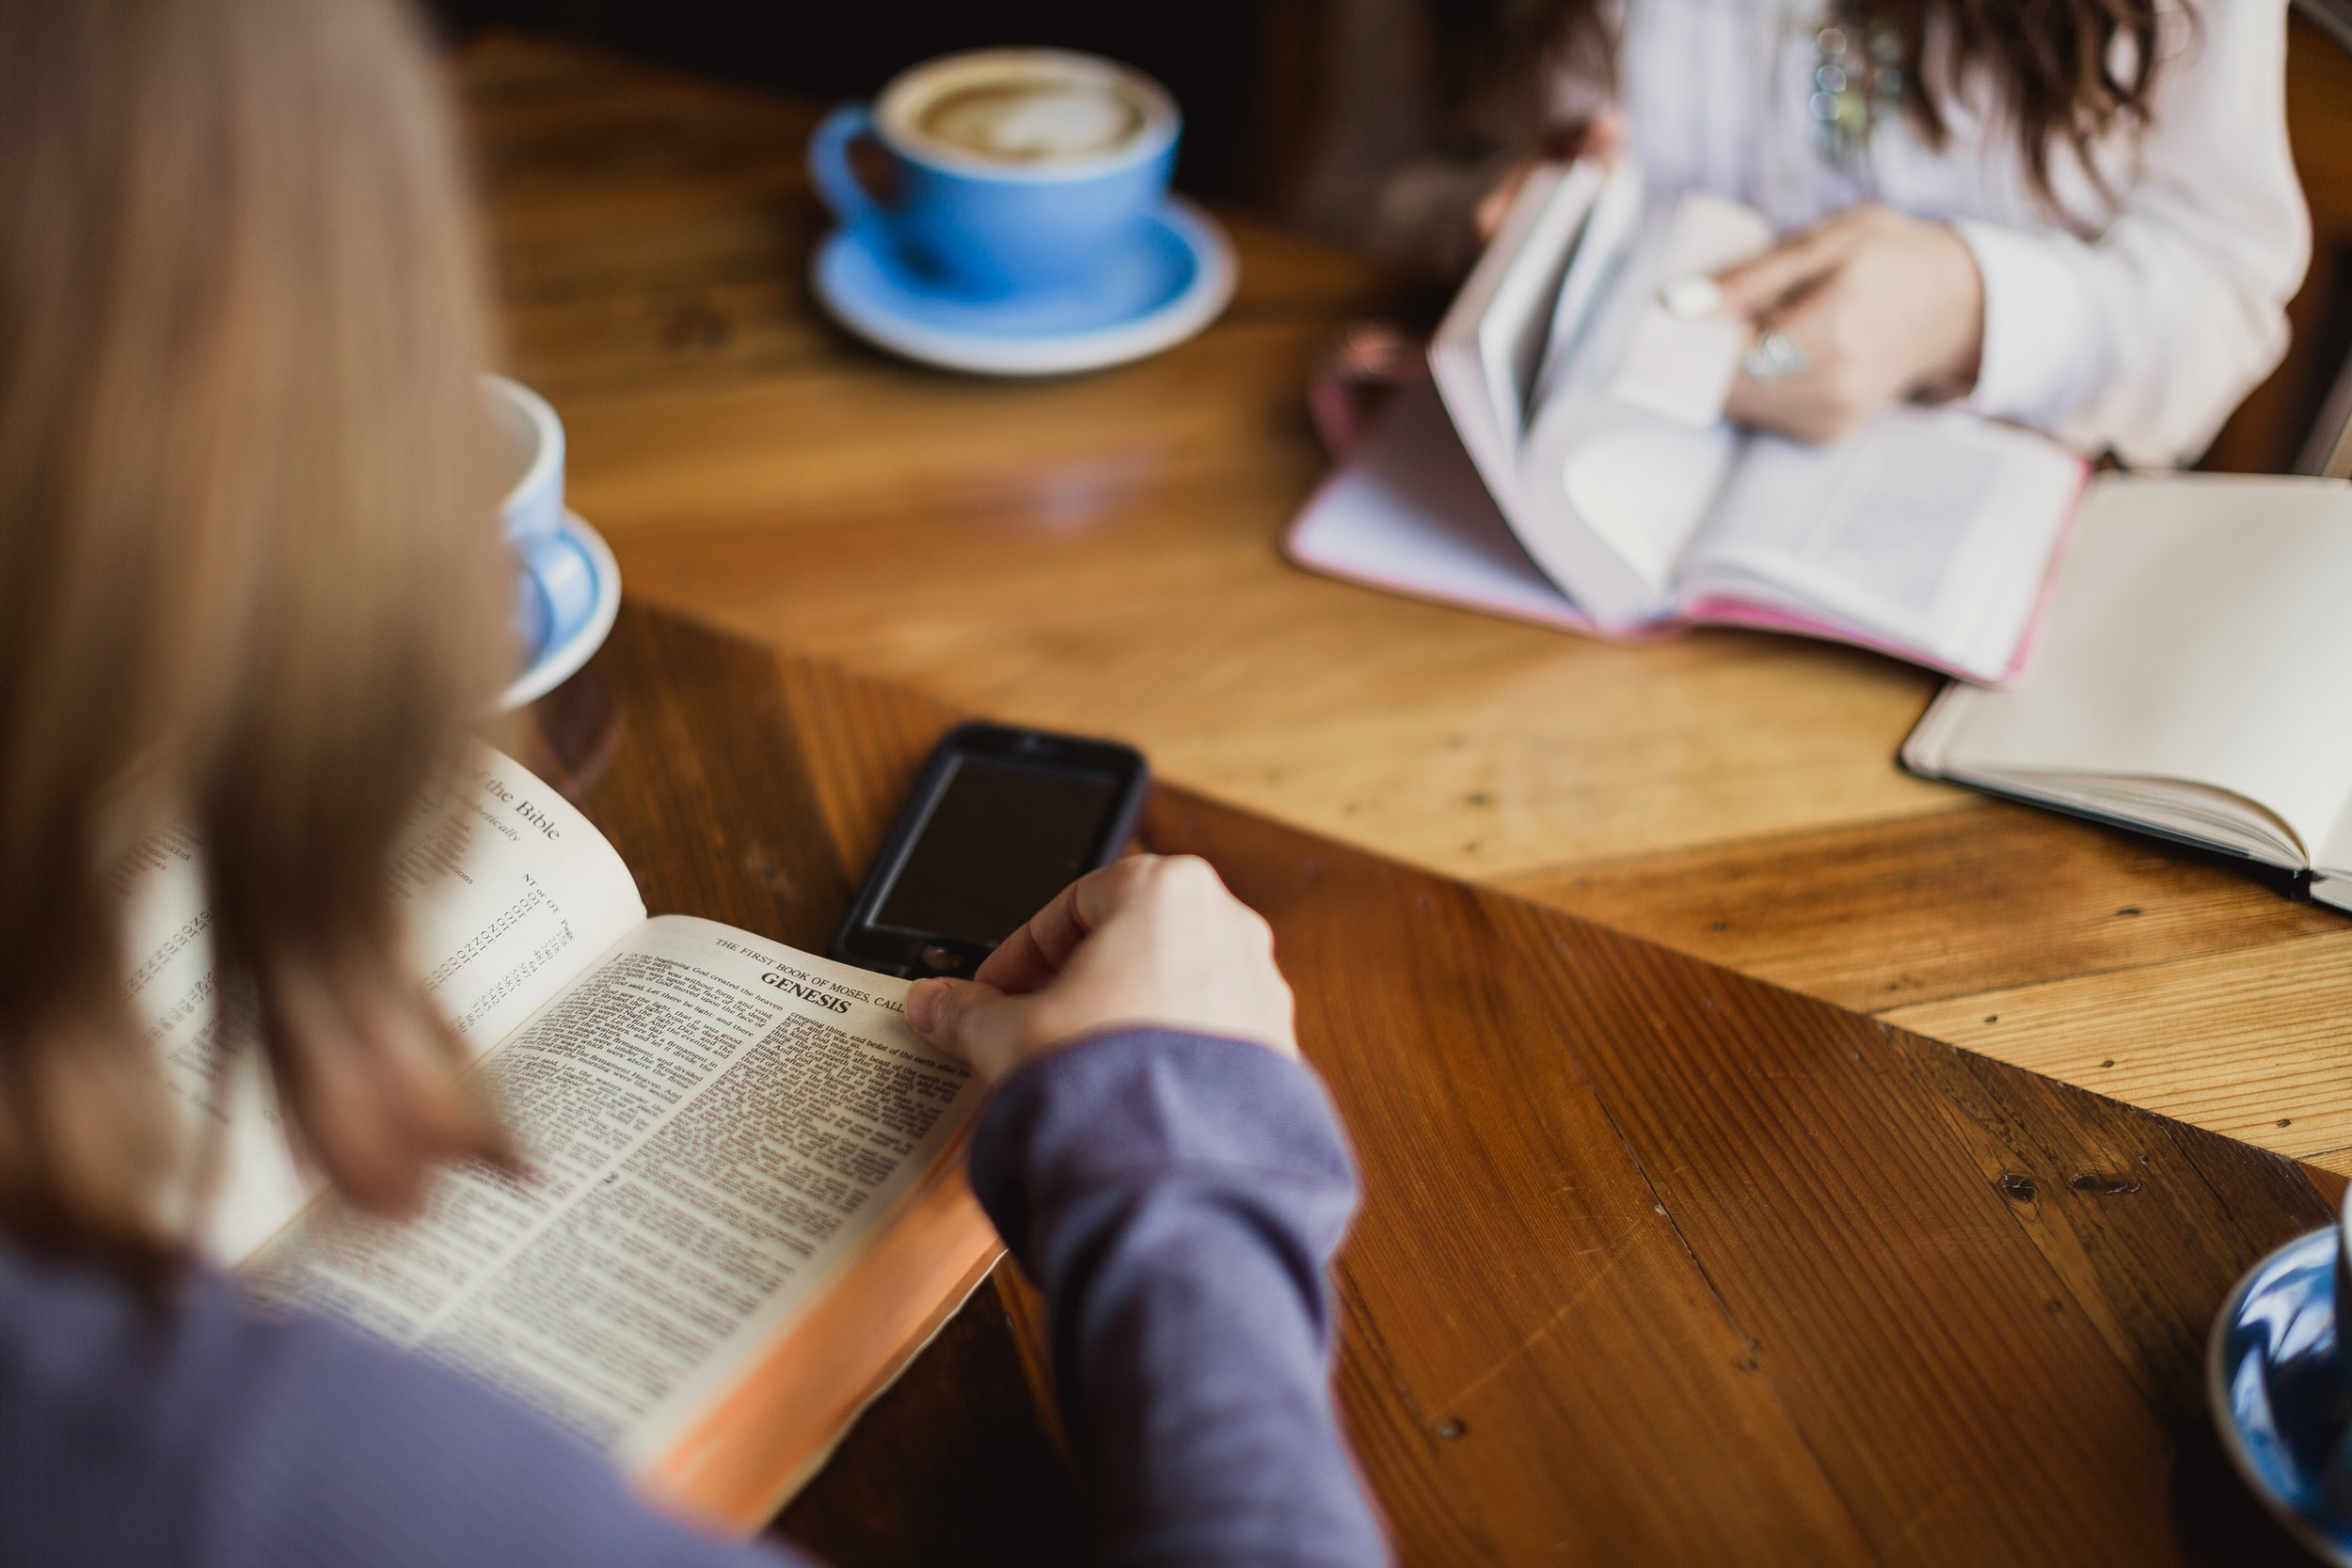 Easy to use resources - After decades of personal Bible study + leading Bible studies, we have developed a resource page to help answer your questions and give you tools to start unpacking Scripture for yourself.